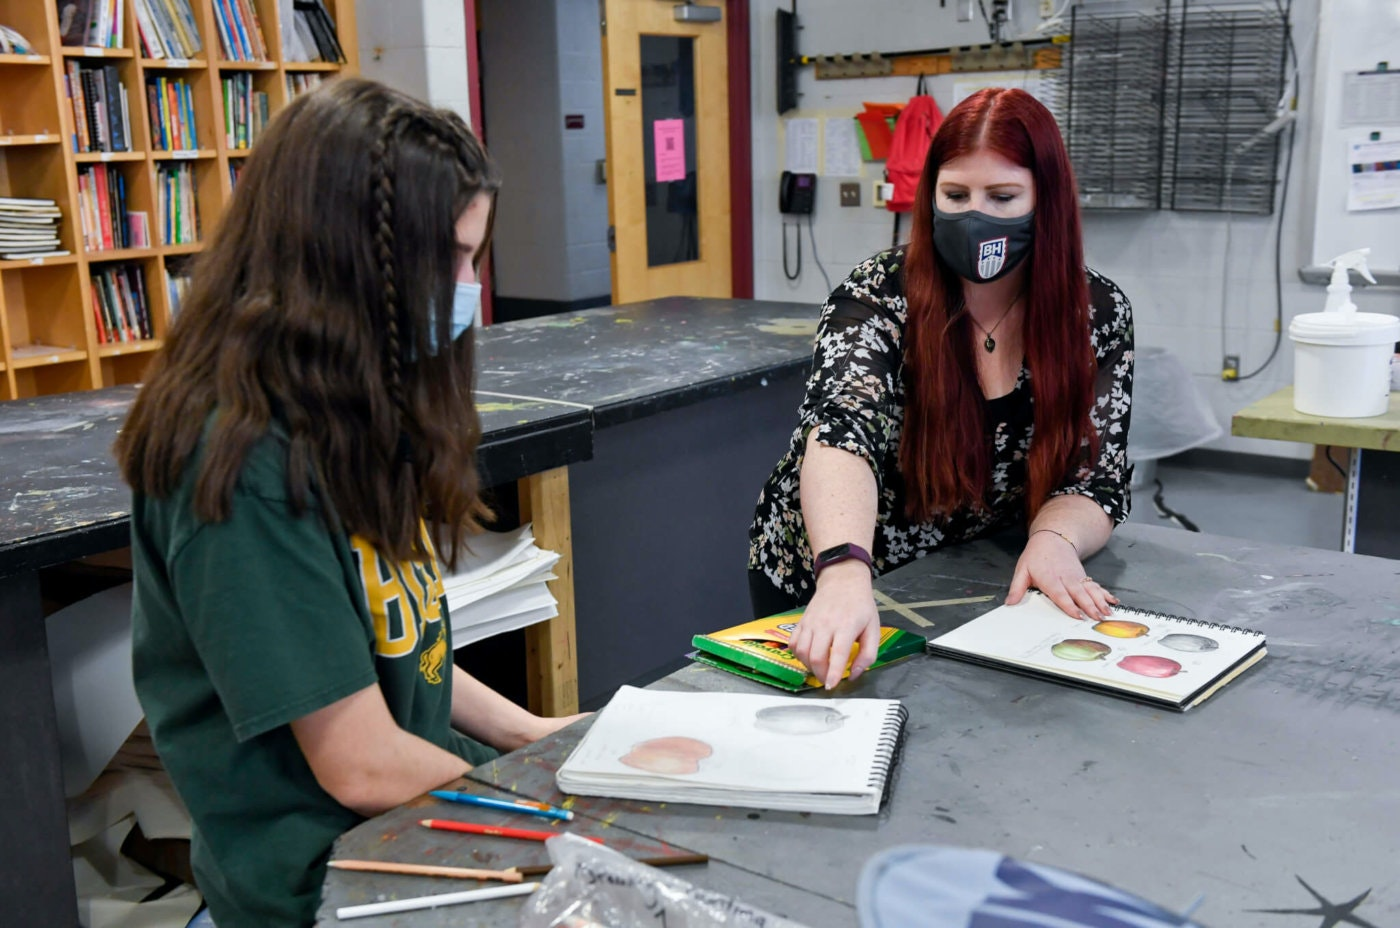 Angelina DeChristopher, a ninth grade student, works with Brandywine Heights High School art teacher Jennilee Miller on March 1, 2021, in Longswamp Twp. (Photo by Ben Hasty/MediaNews Group/Reading Eagle via Getty Images)